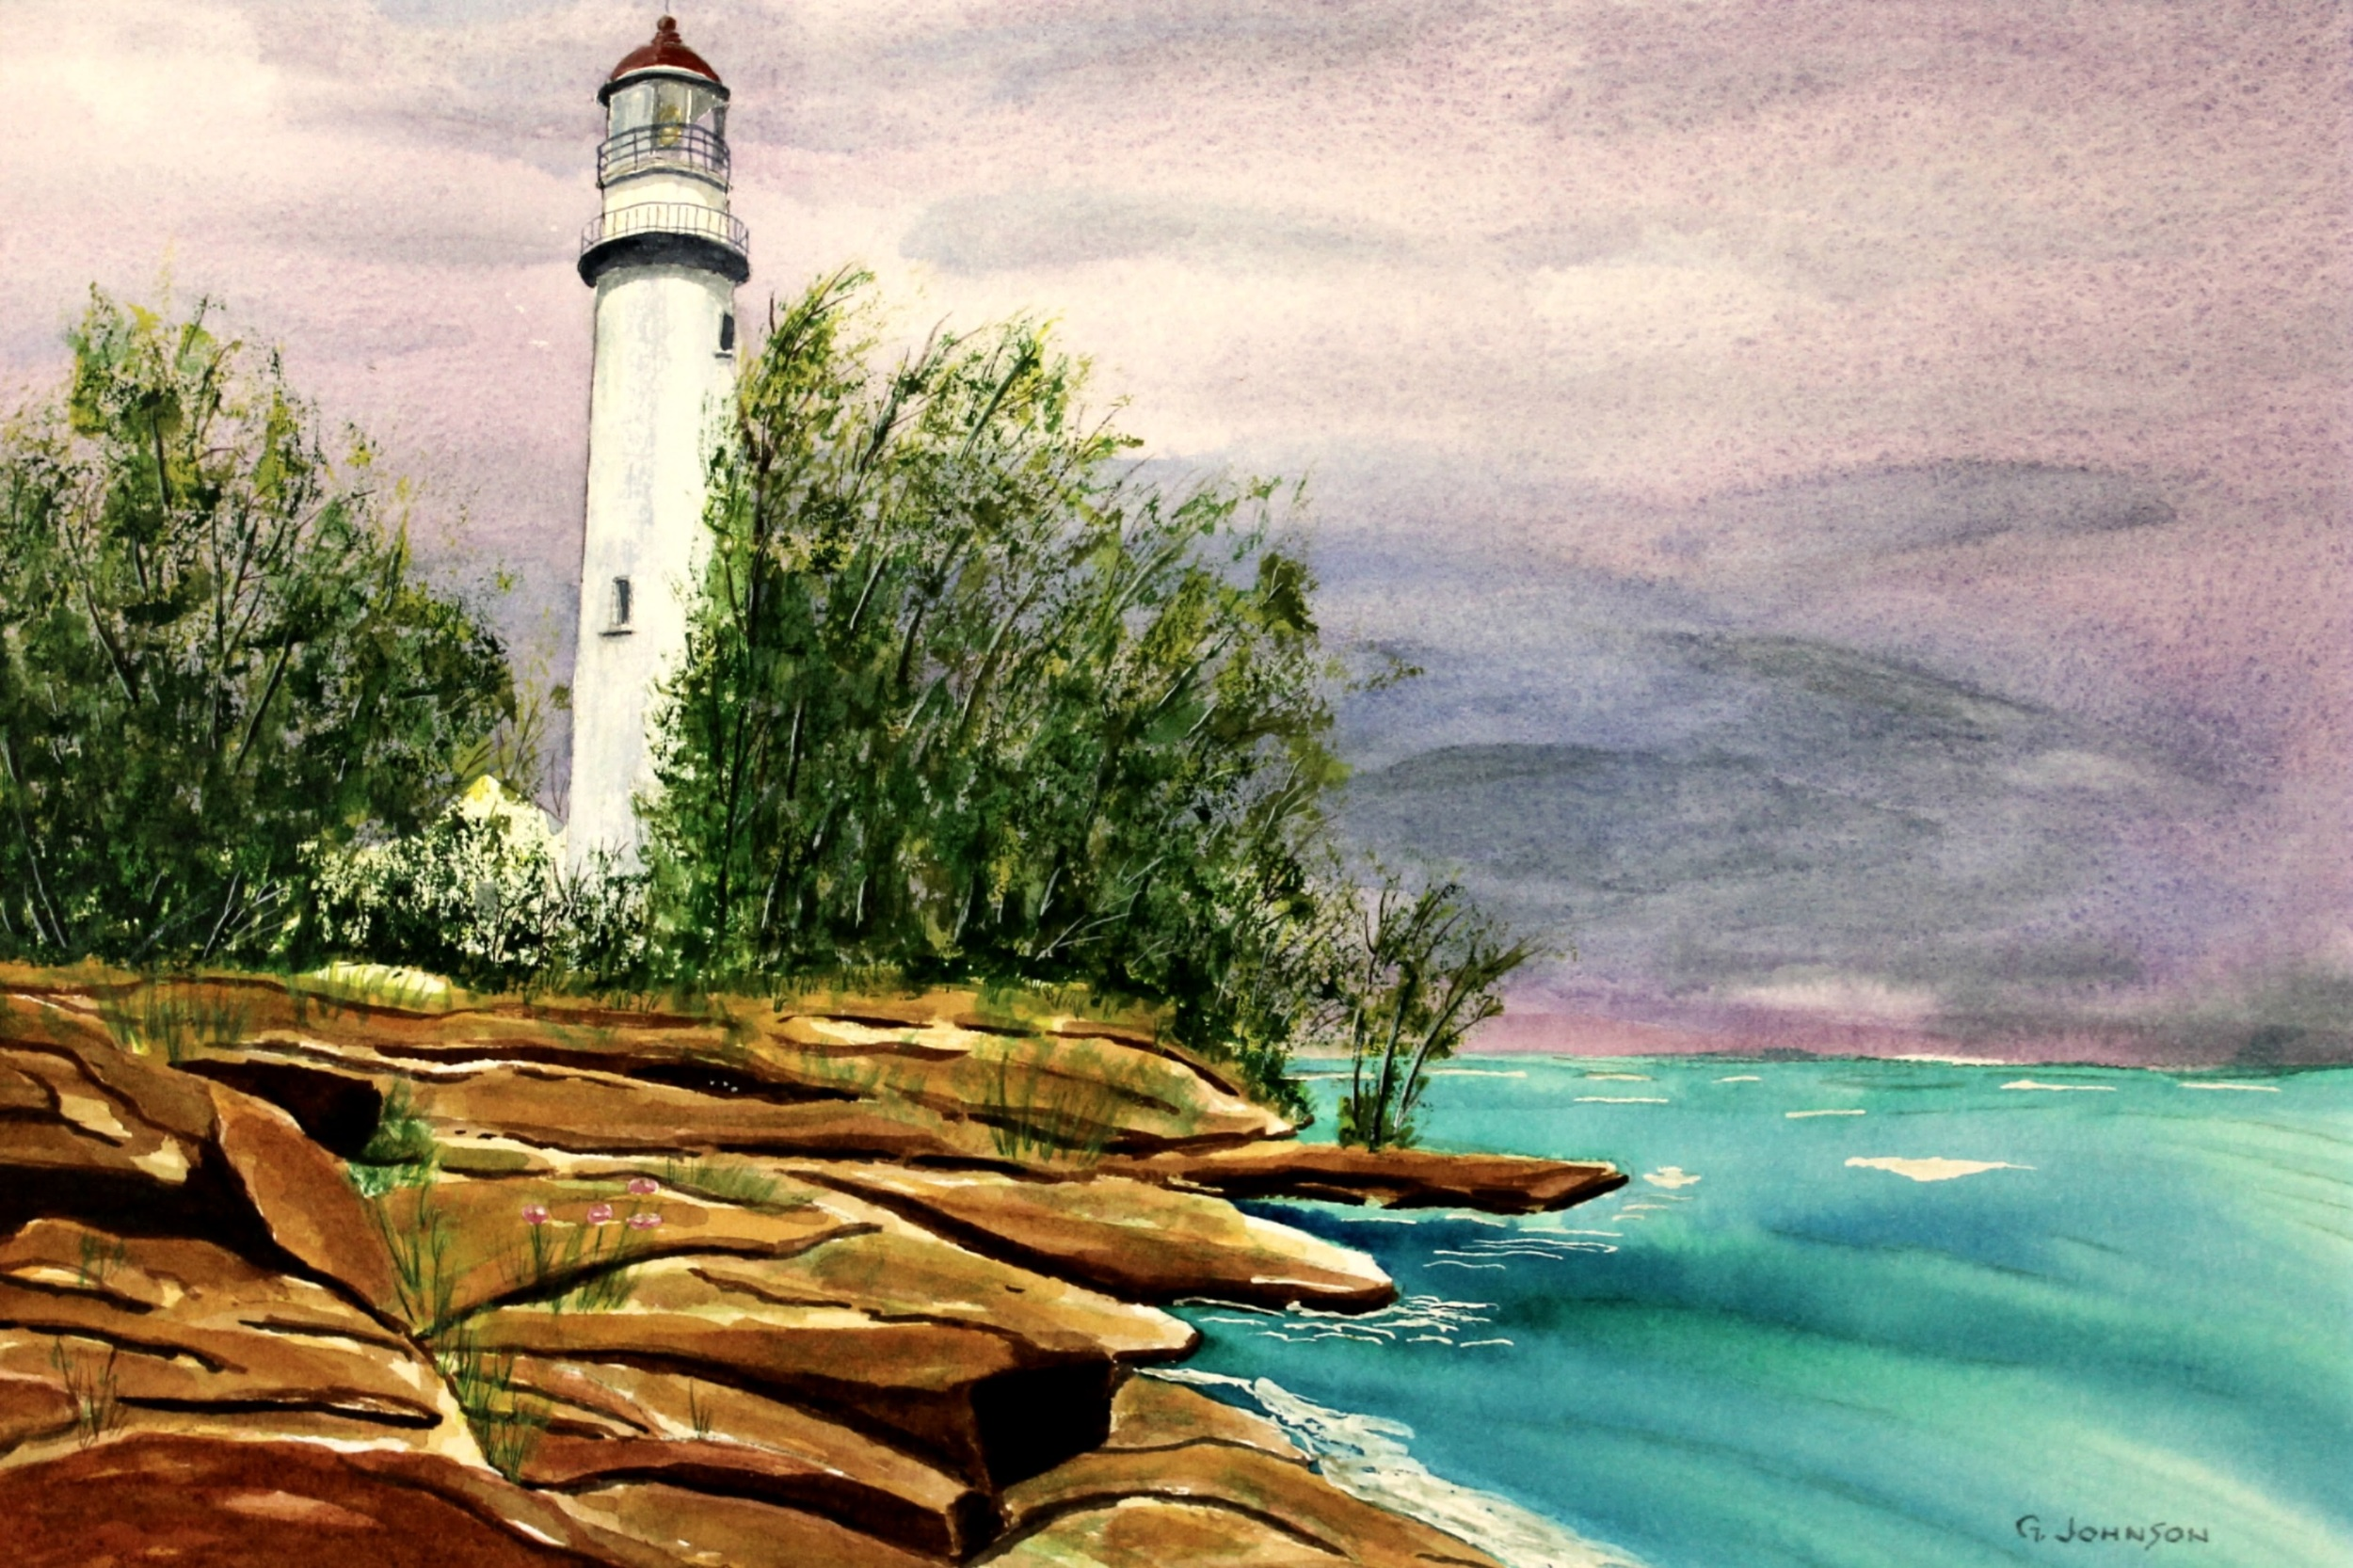 Lake Michigan Lighthouse. Image size 10 X 13. Framed out at 16 X 19. Cost framed is $500. Unframed cost is $450.